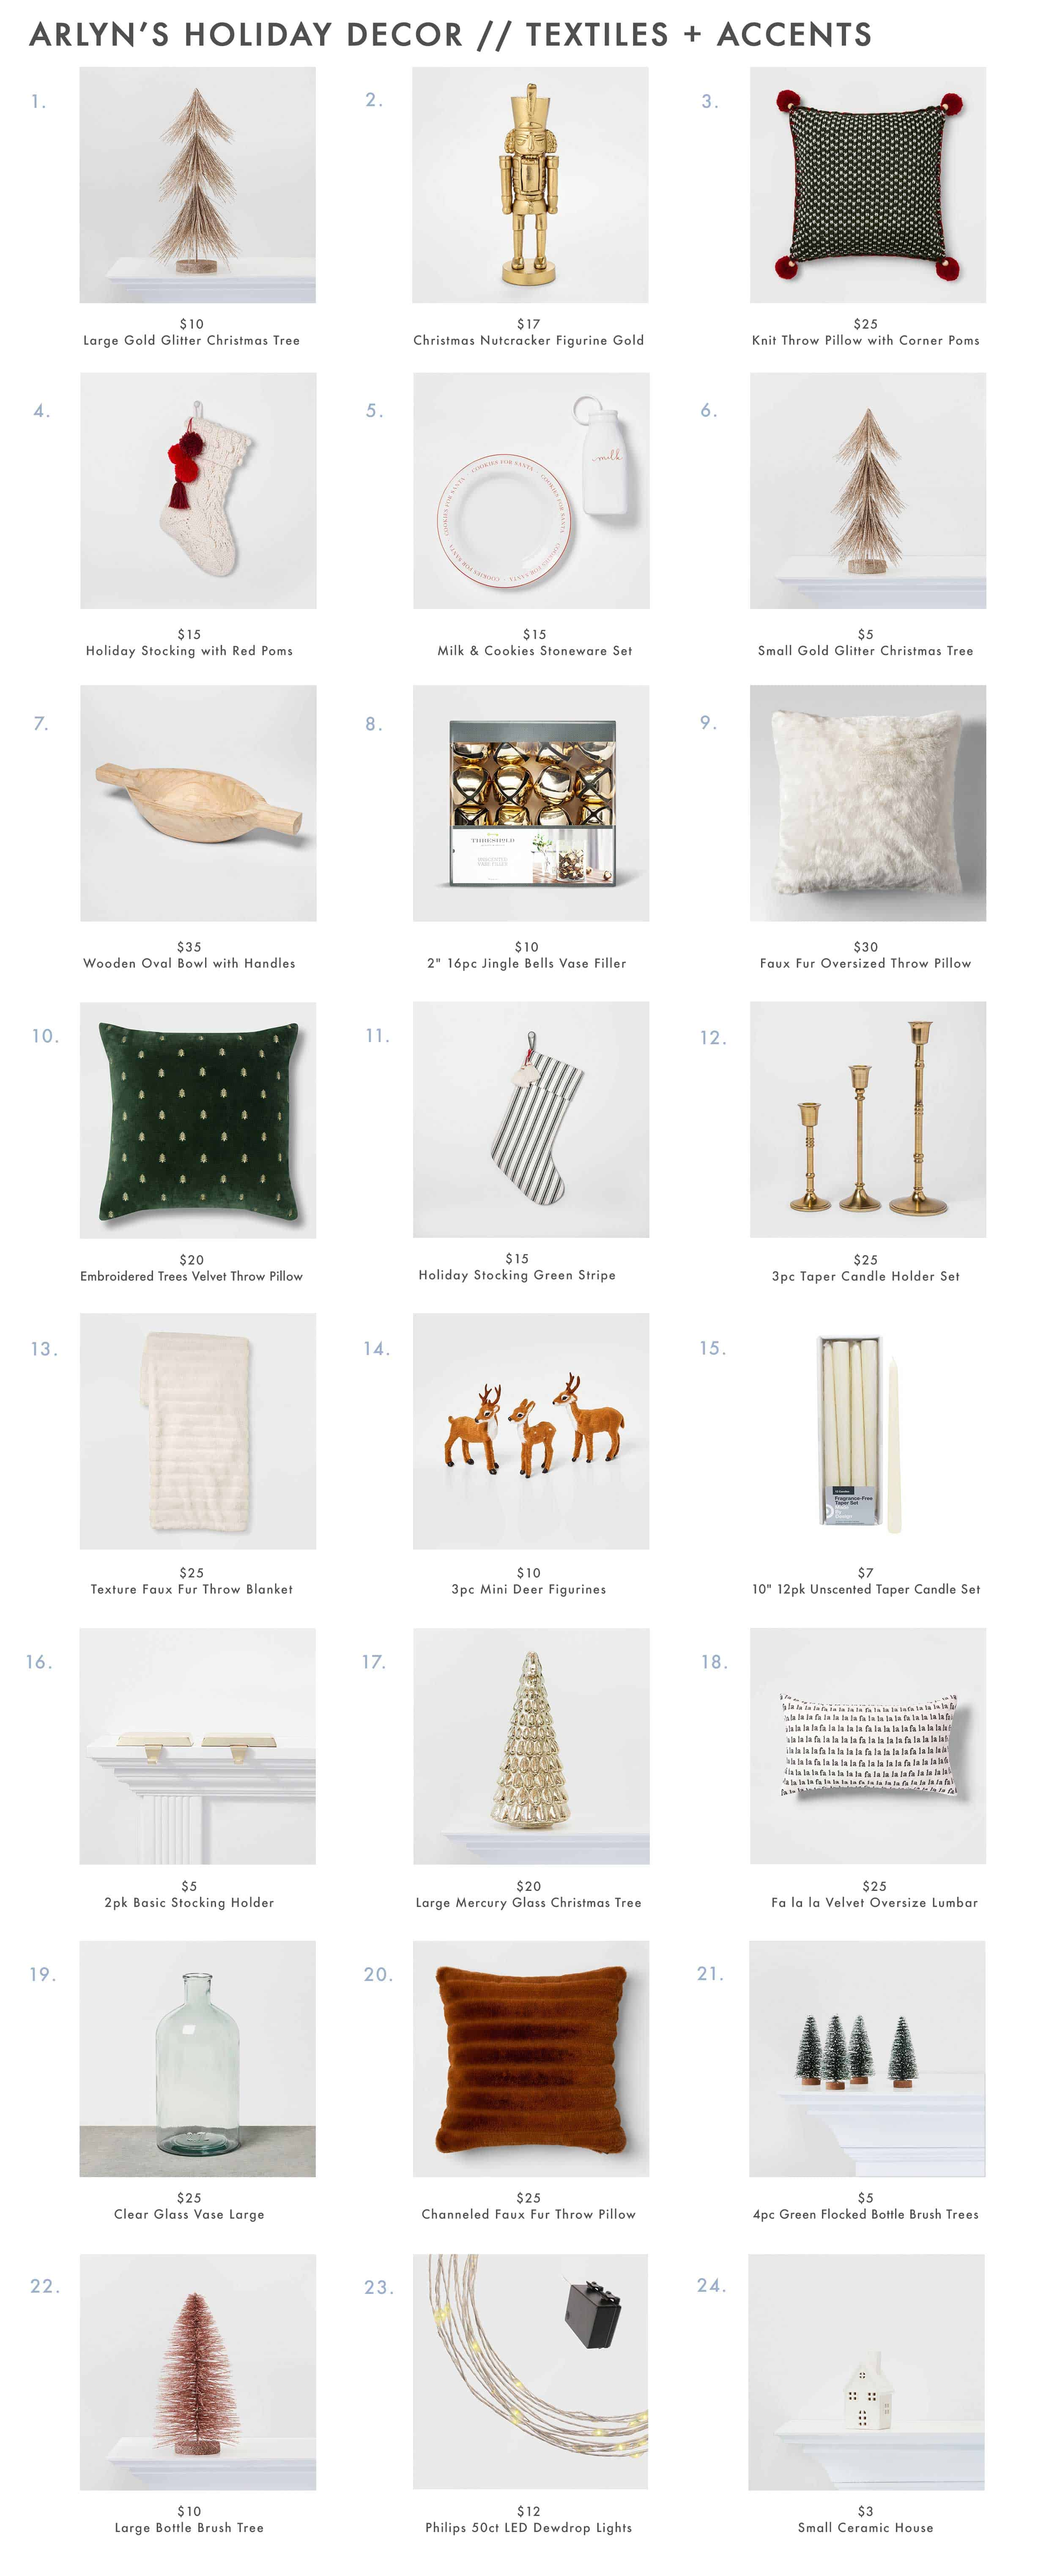 Arlyn's Holiday Decor Textiles And Accents